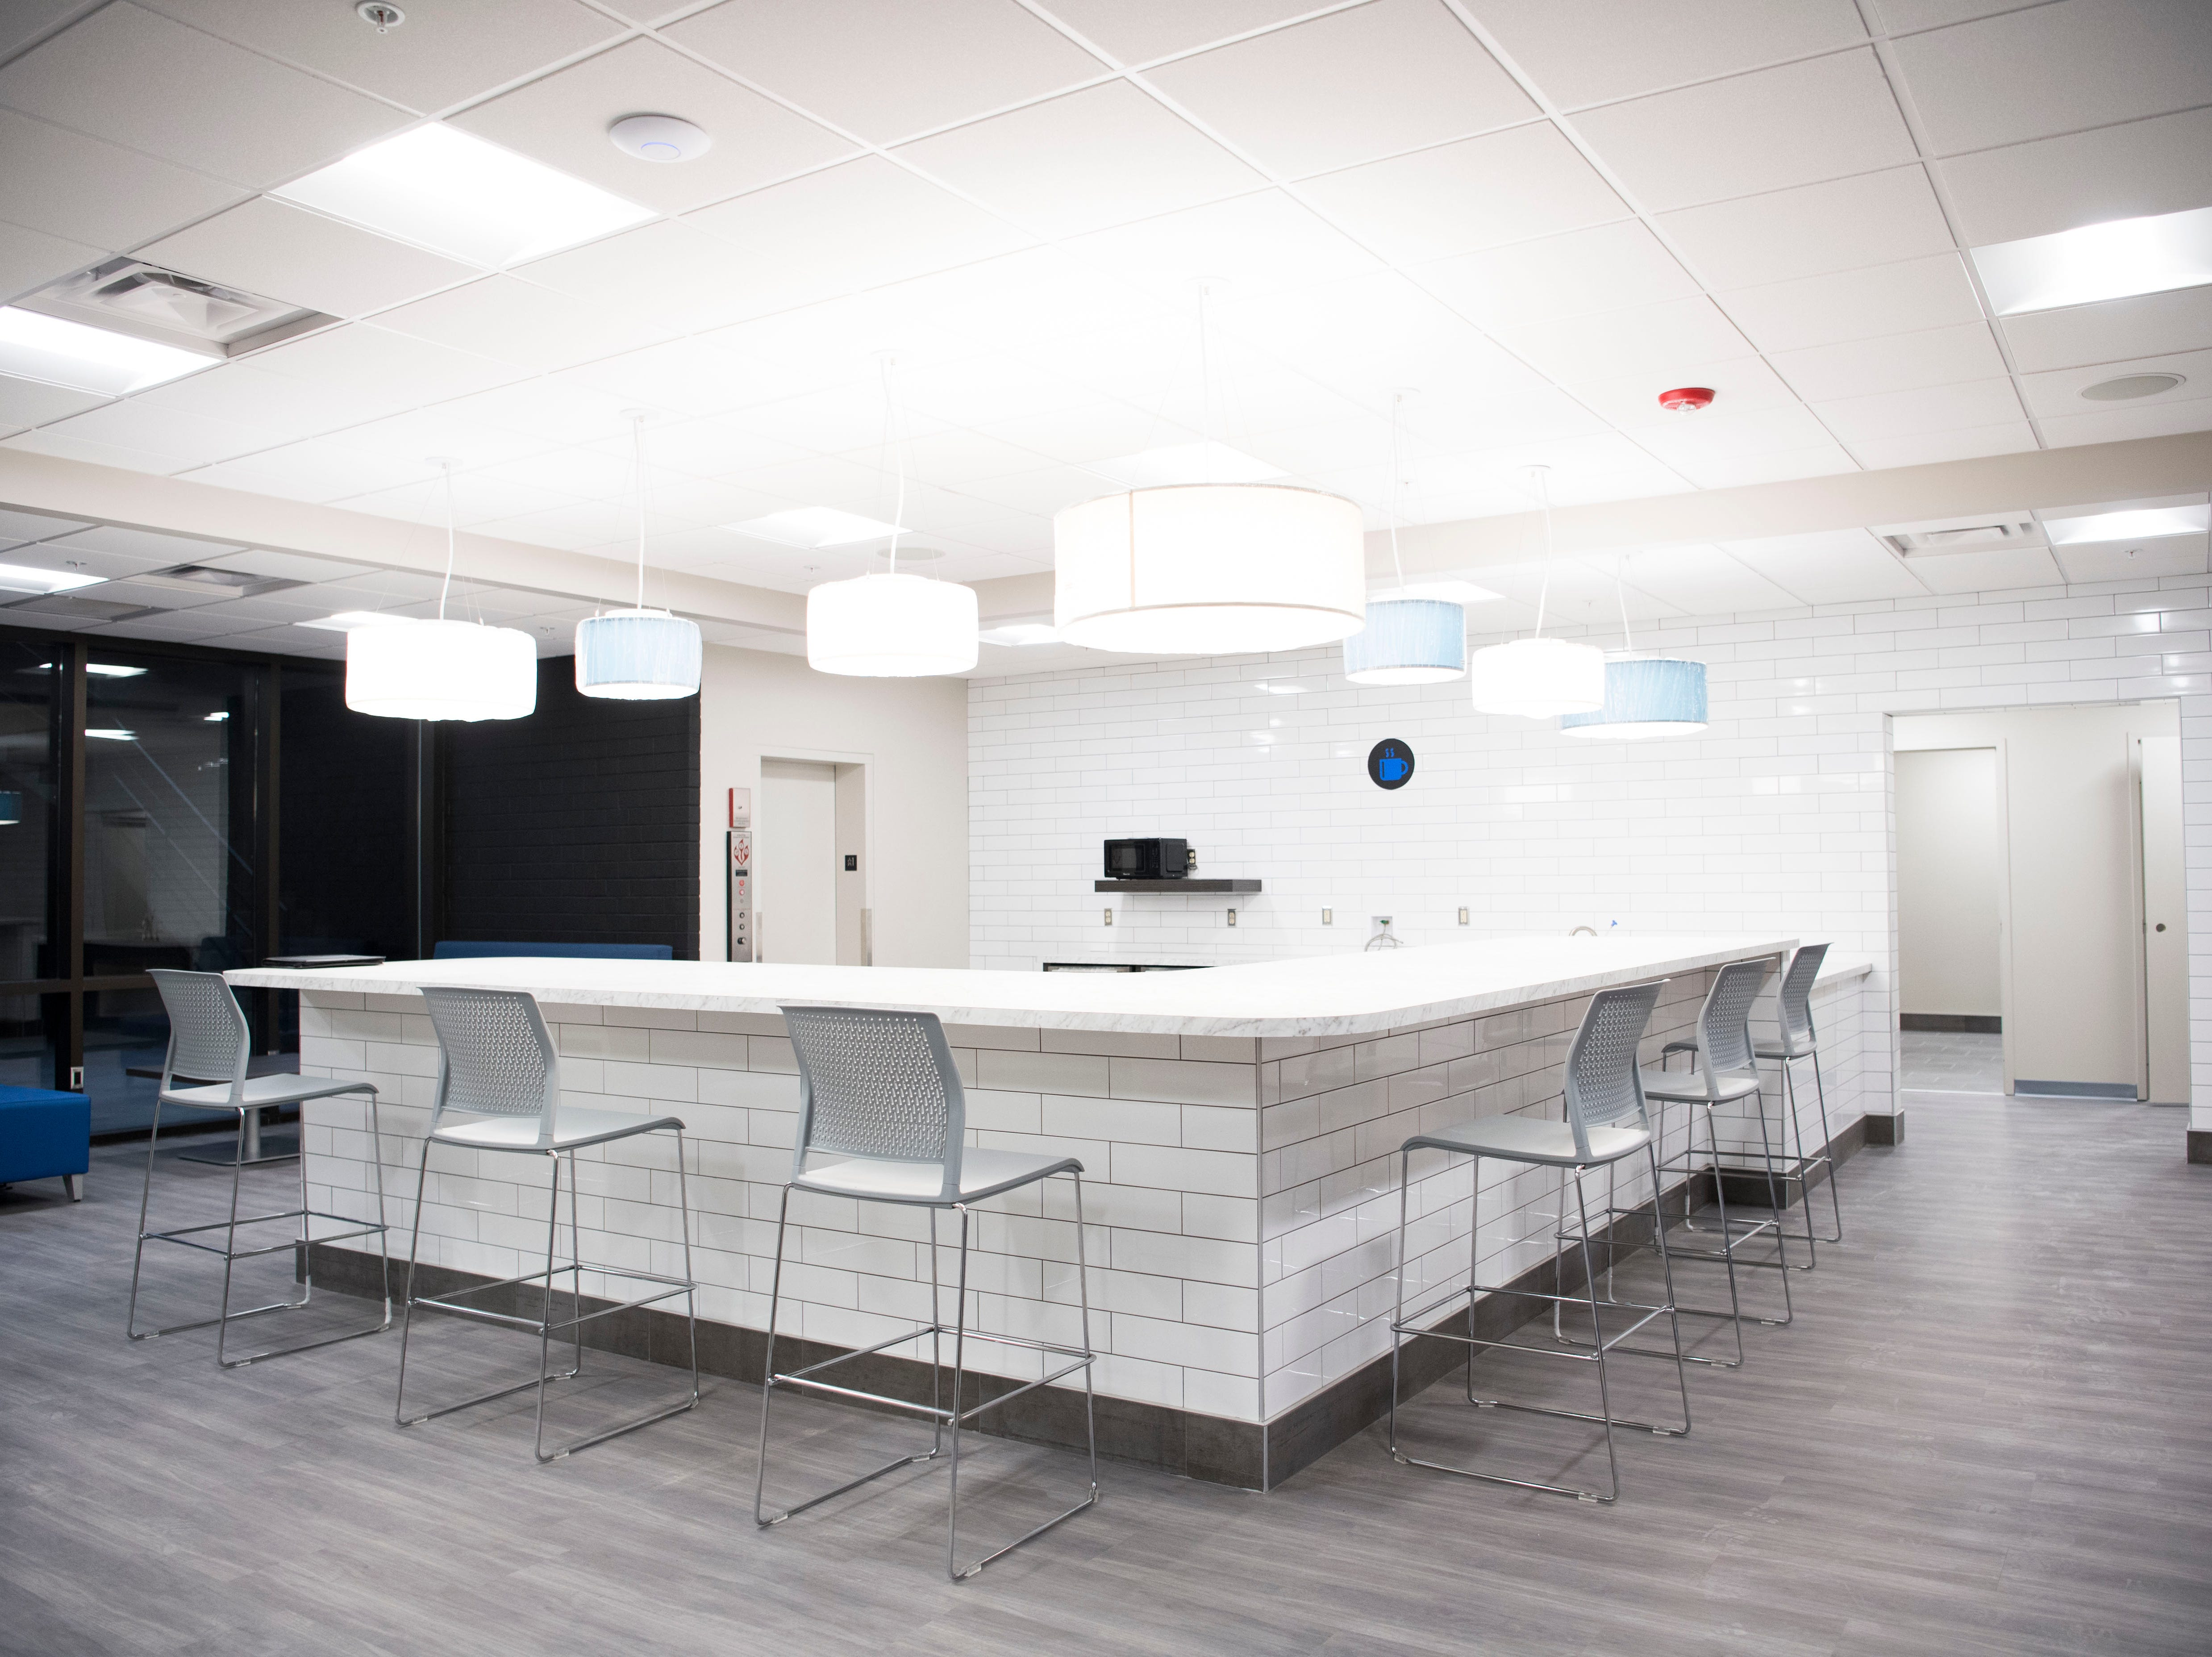 The kitchen area in Ts117, a new coworking space in Oak Ridge run by brothers Rick and Ryan Chinn, Tuesday, Feb. 19, 2019.